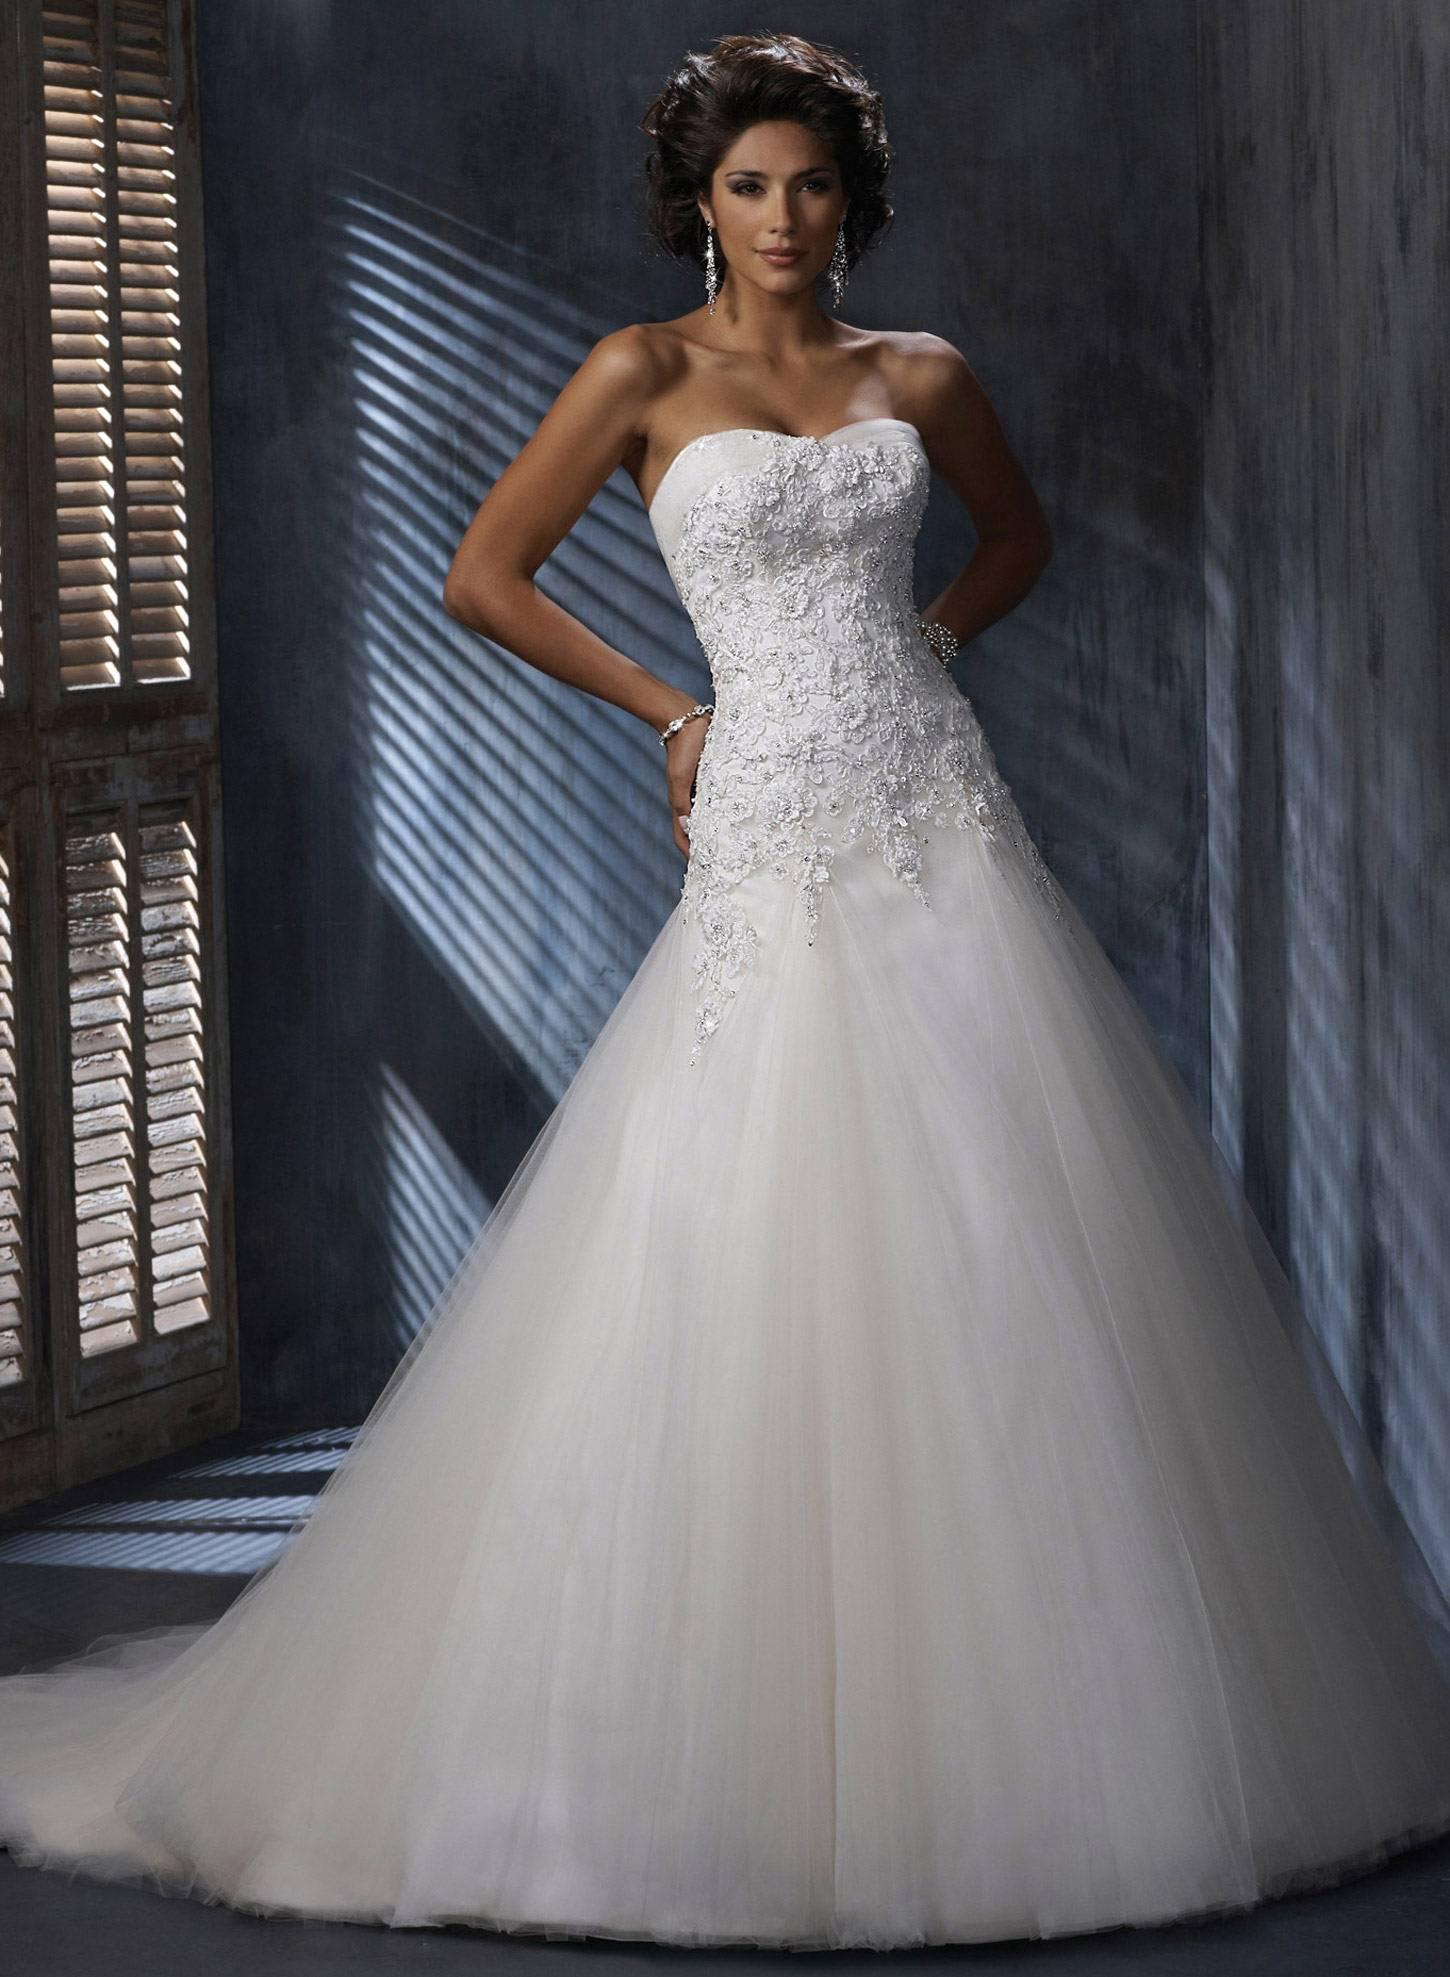 2014 Top Quality New Custom Made White Satin Tulle Applique Beading Sequin Strapless Wedding Dress